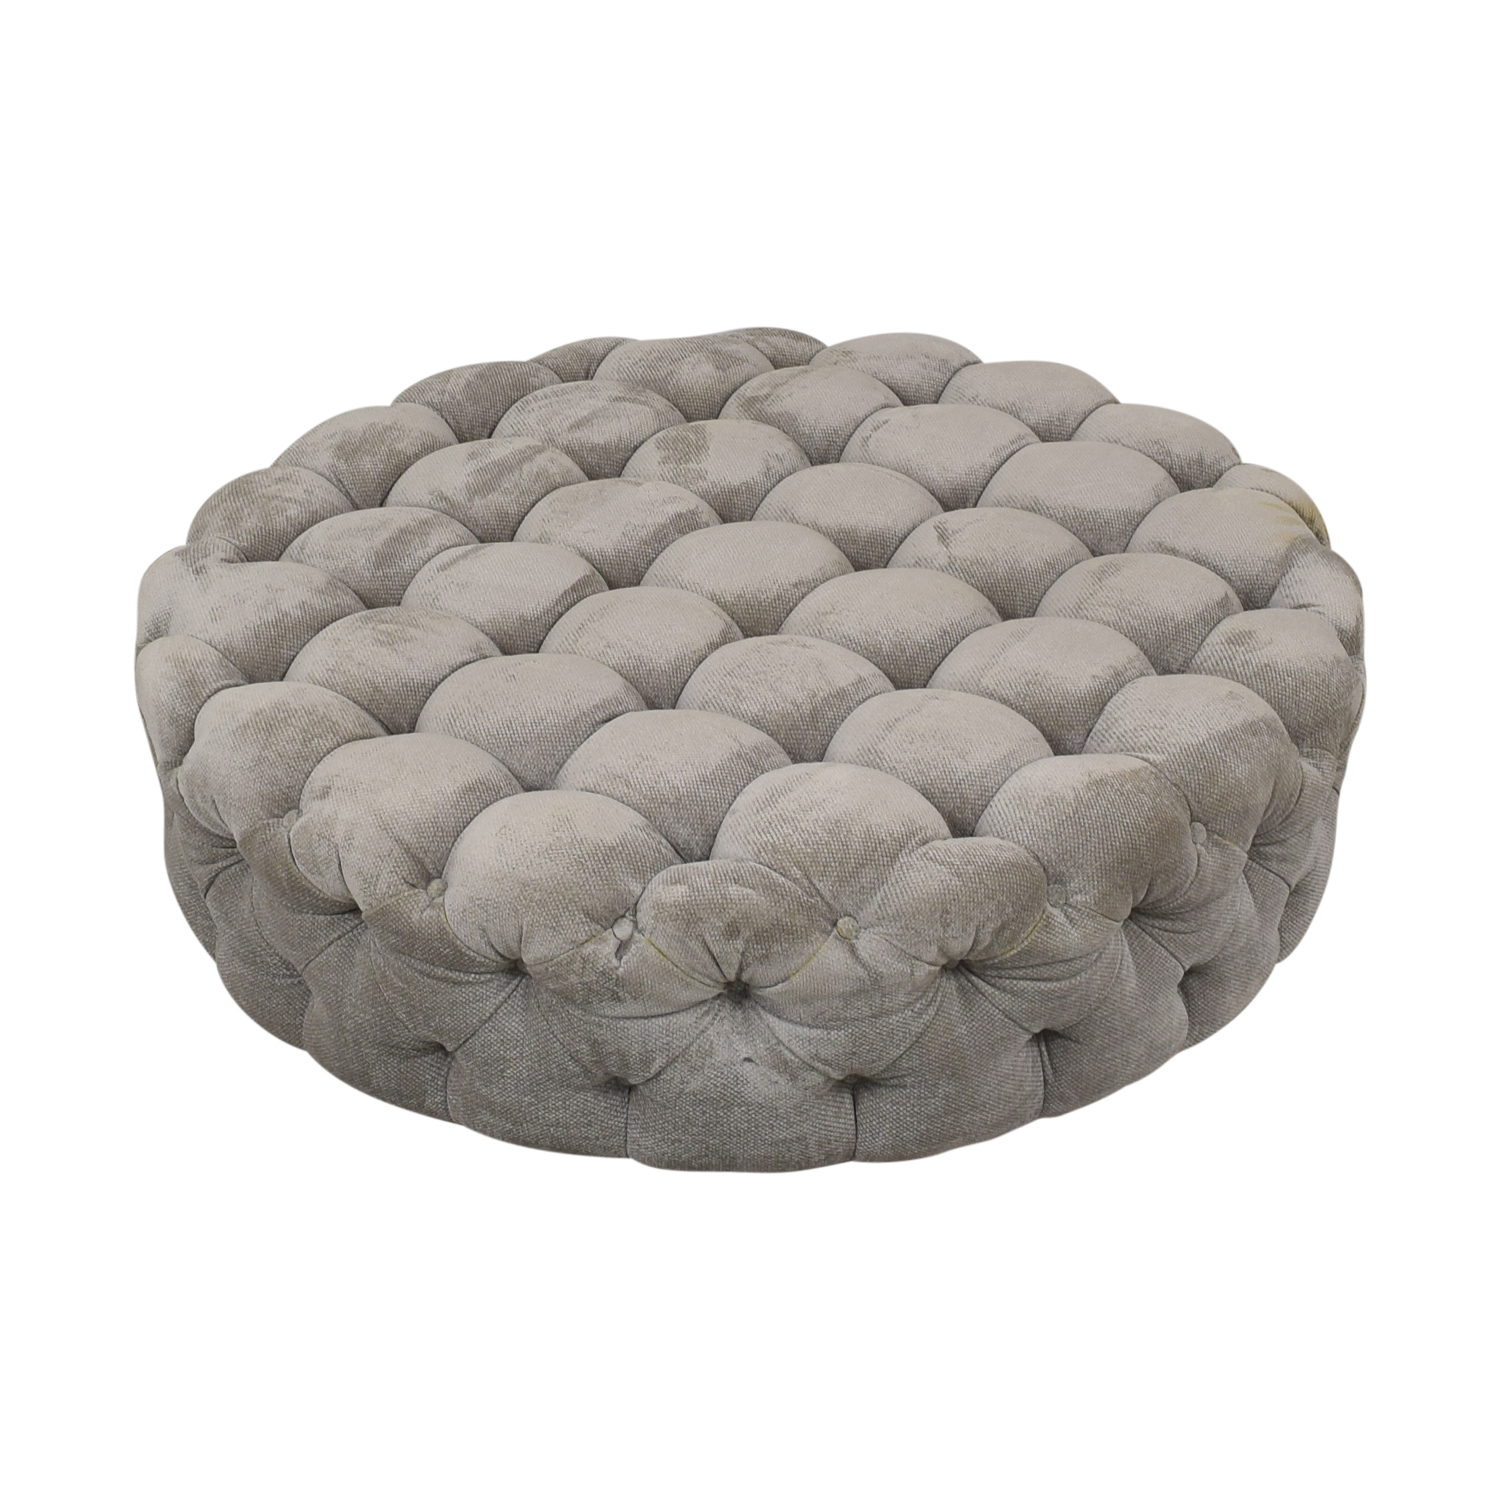 Round Tufted Ottoman or Coffee Table dimensions